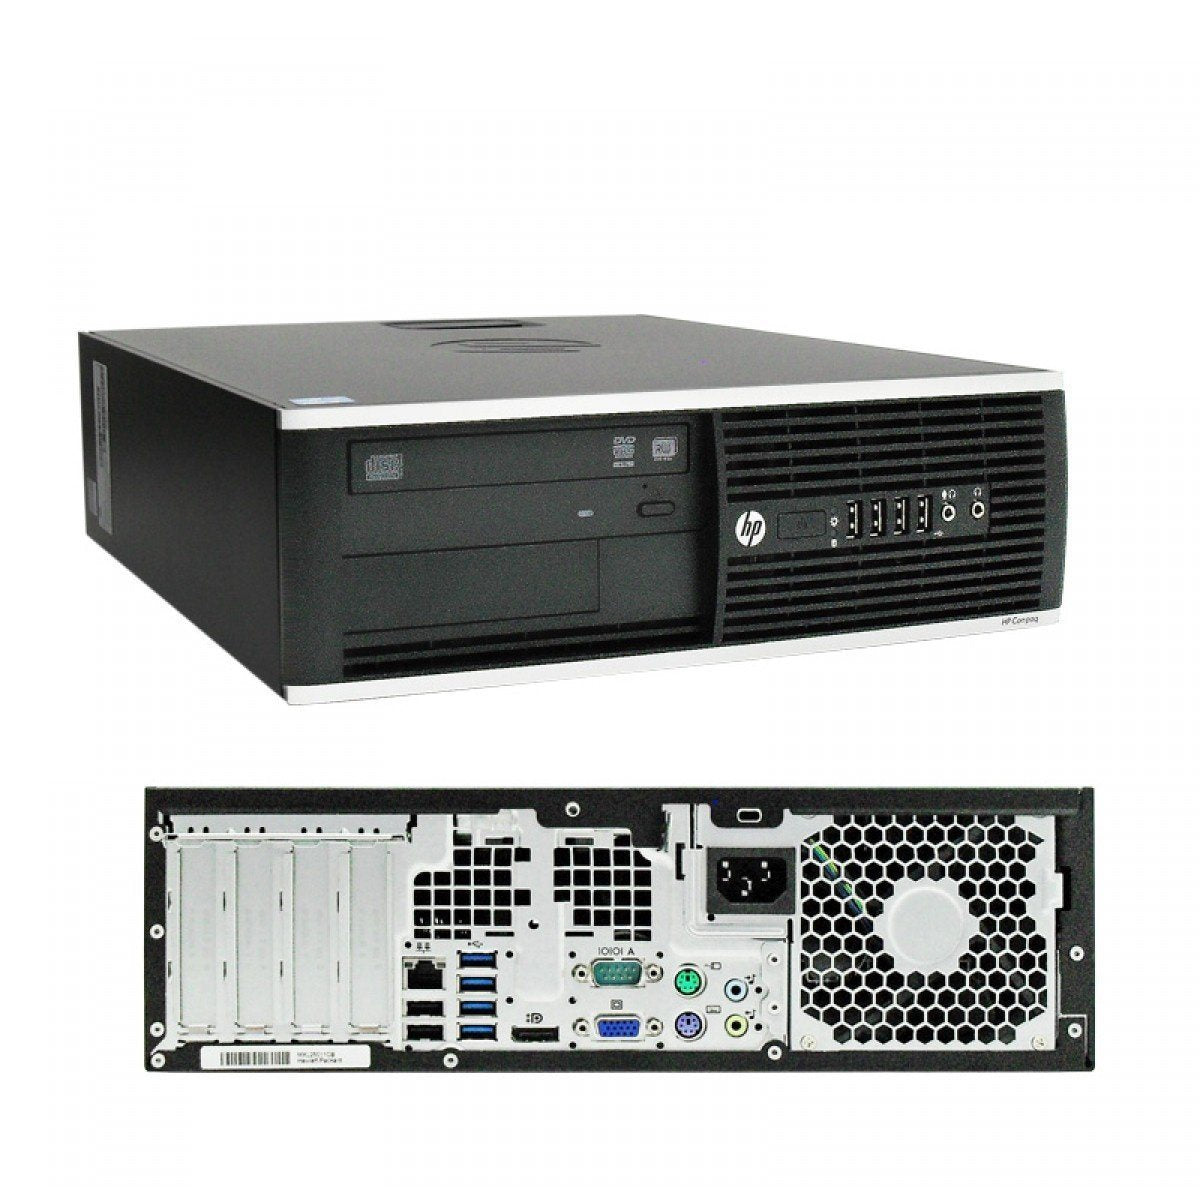 HP Compaq Elite 8300 SFF i5-3470 3 2GHz 4GB RAM 250GB HDD DVD-RW Windows 10  Professional